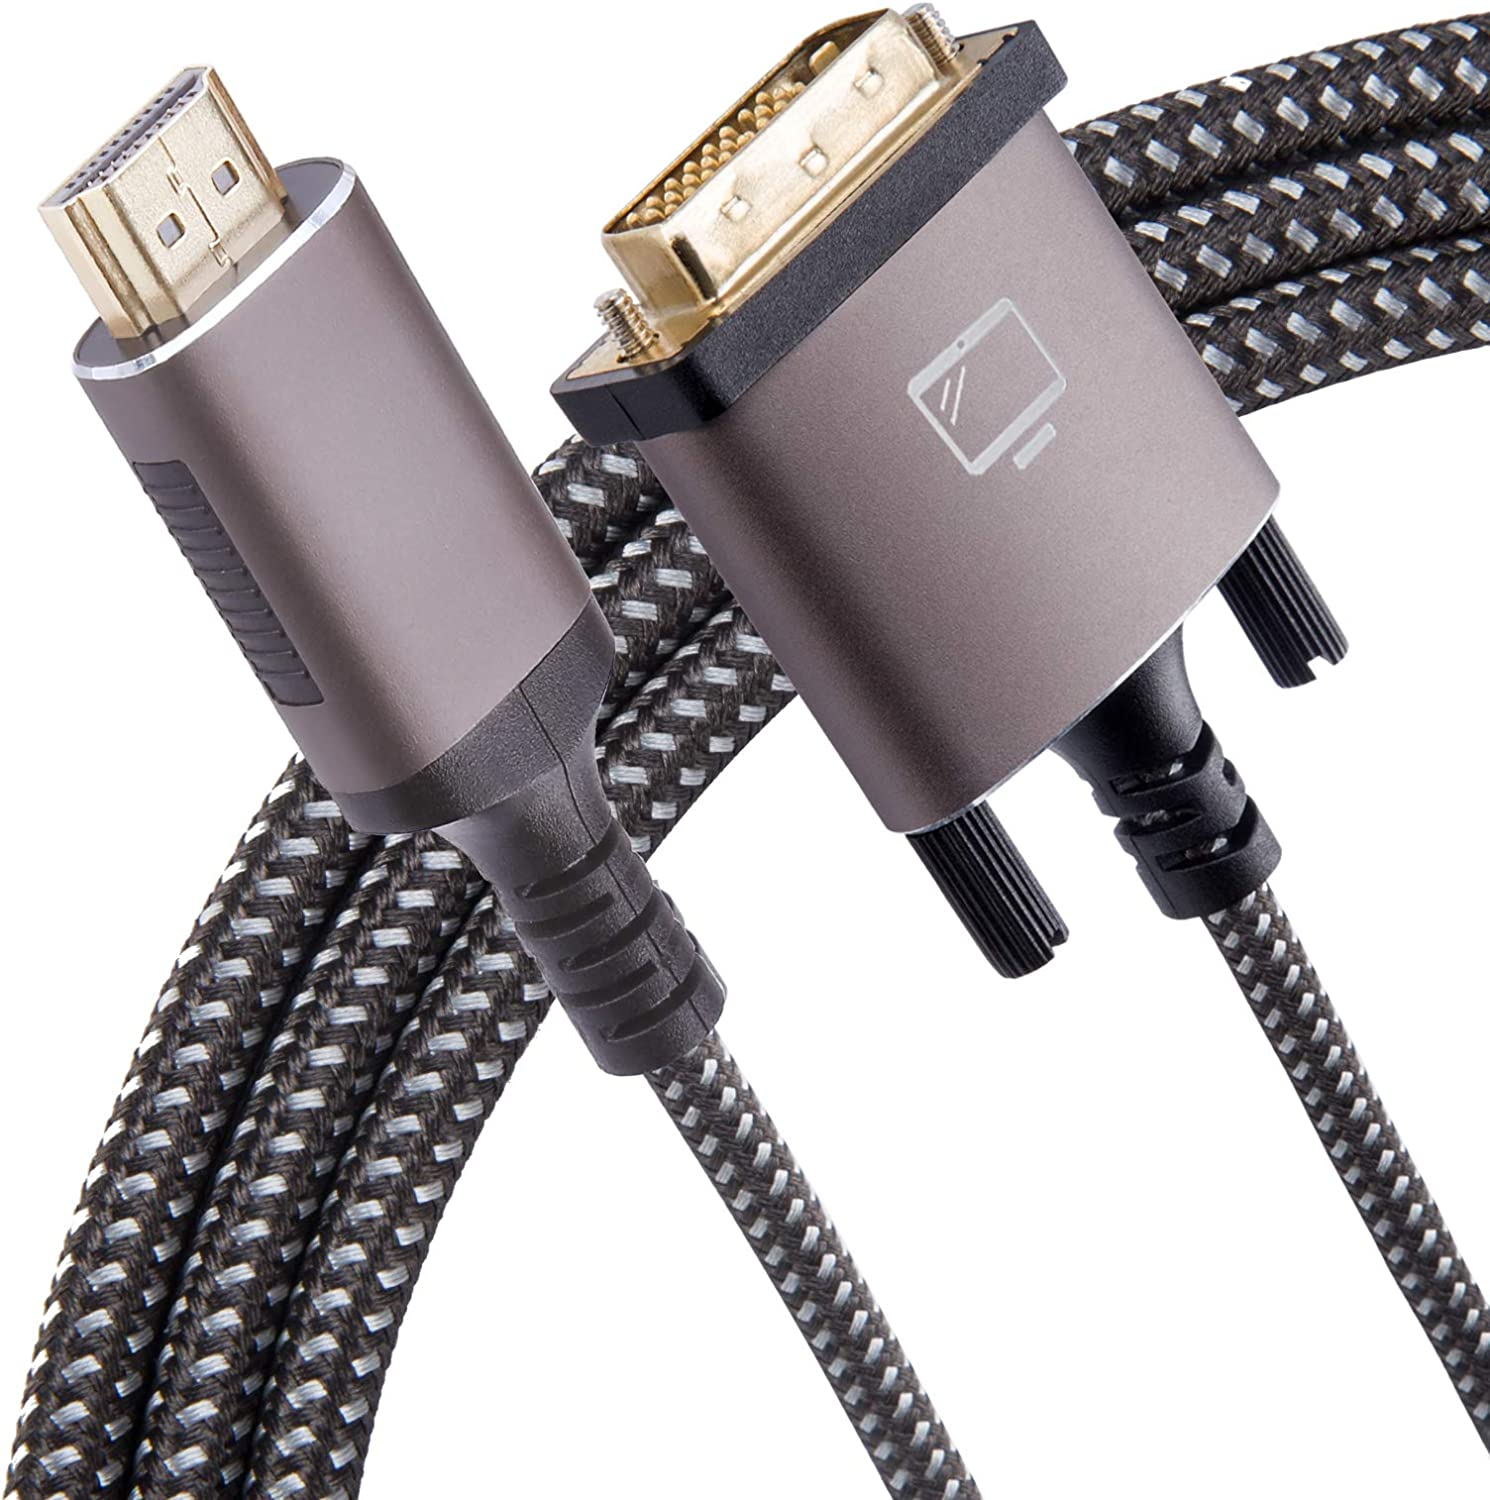 HDMI Free shipping anywhere in the nation to DVI Cable Bi-Directional 1080P Support Braid Nylon Reservation Full